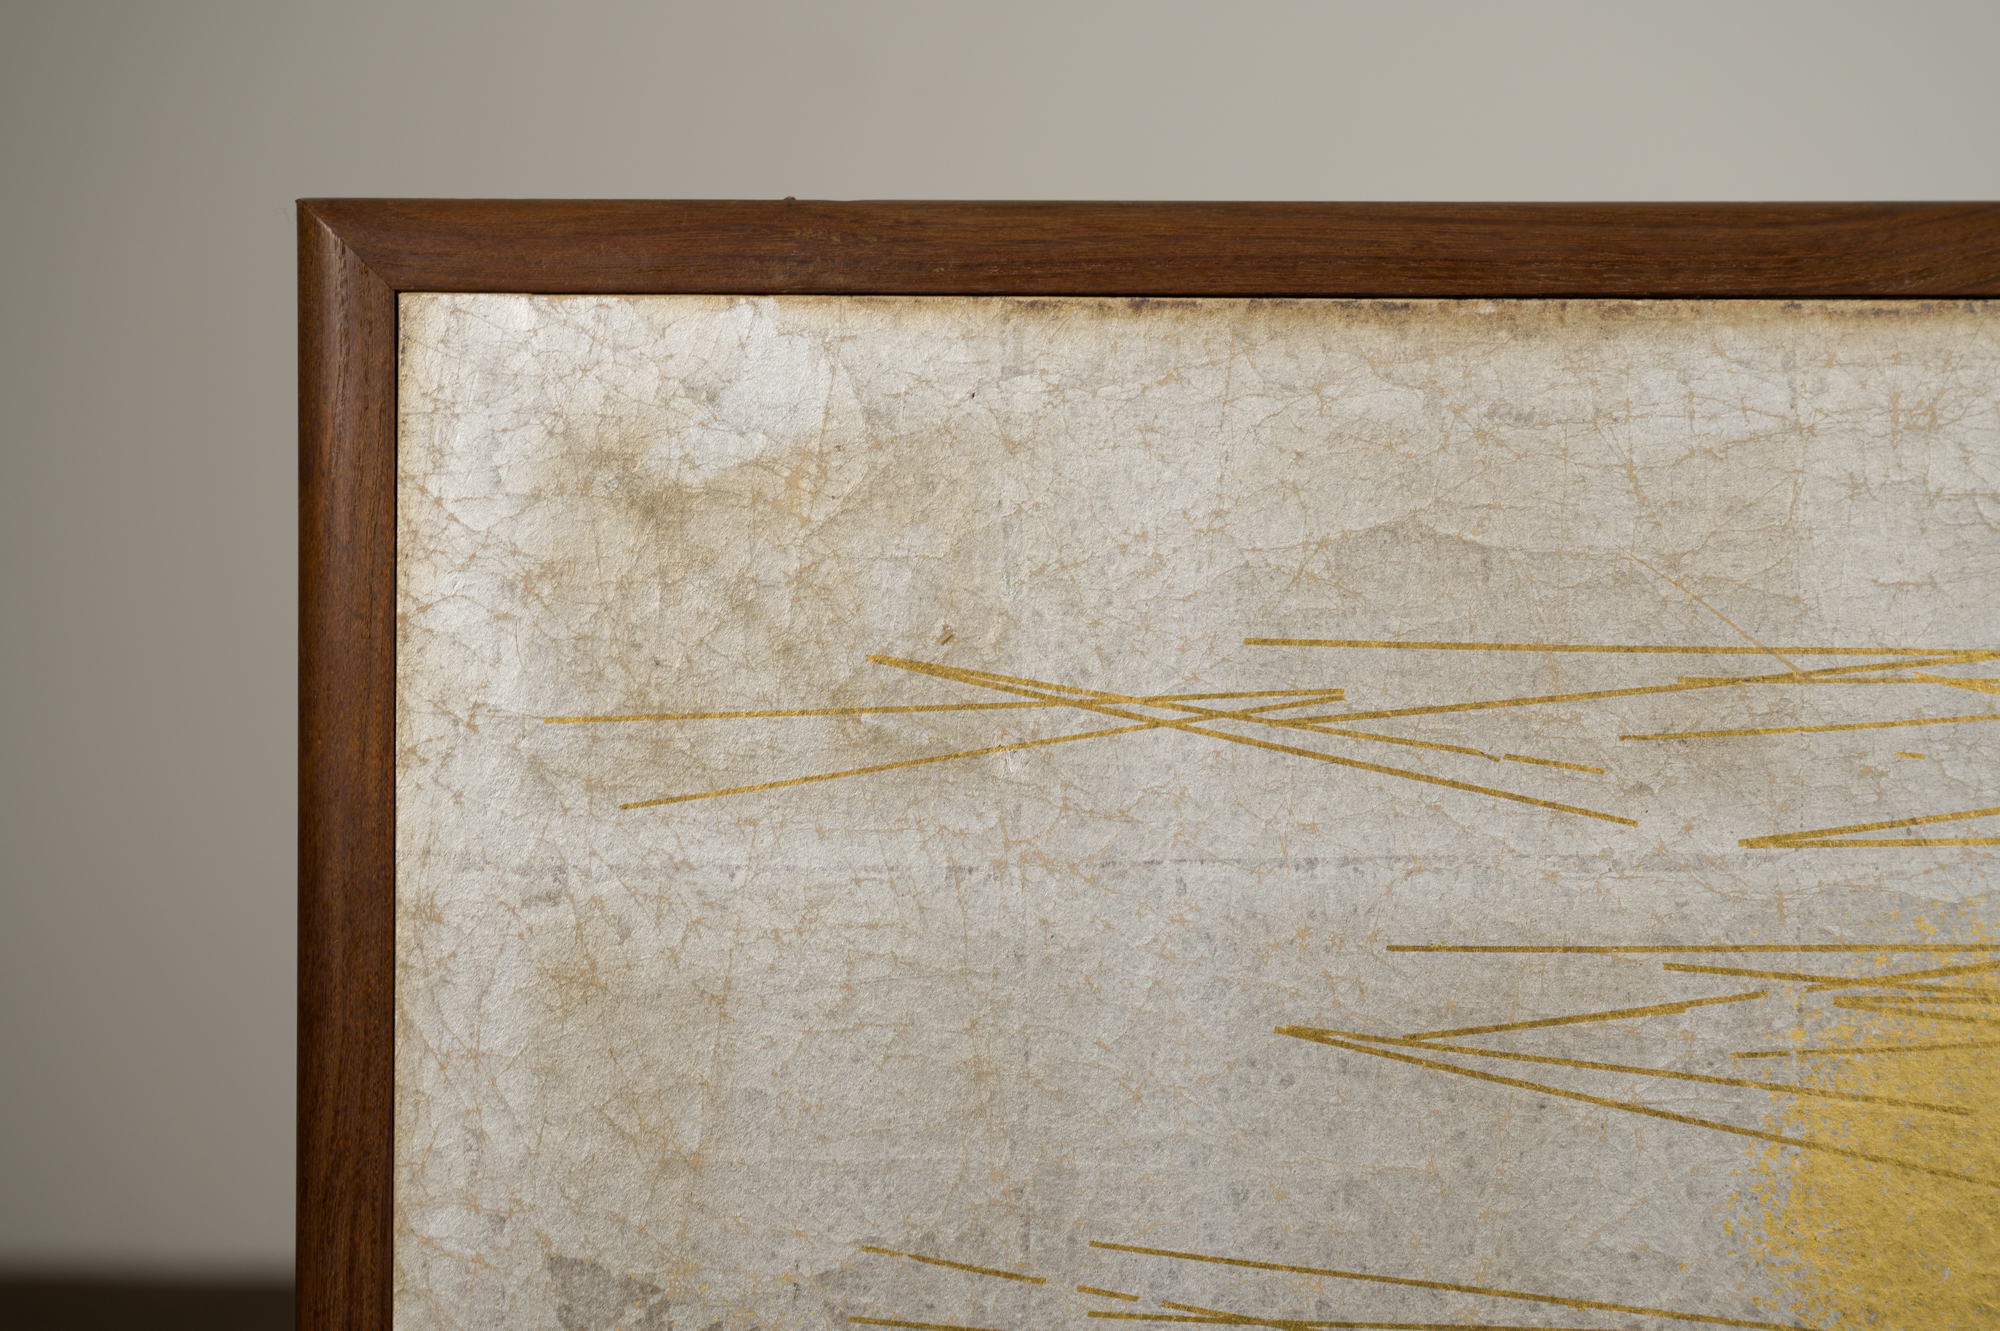 Japanese Four Panel Screen: Abstract Lines and Orbs